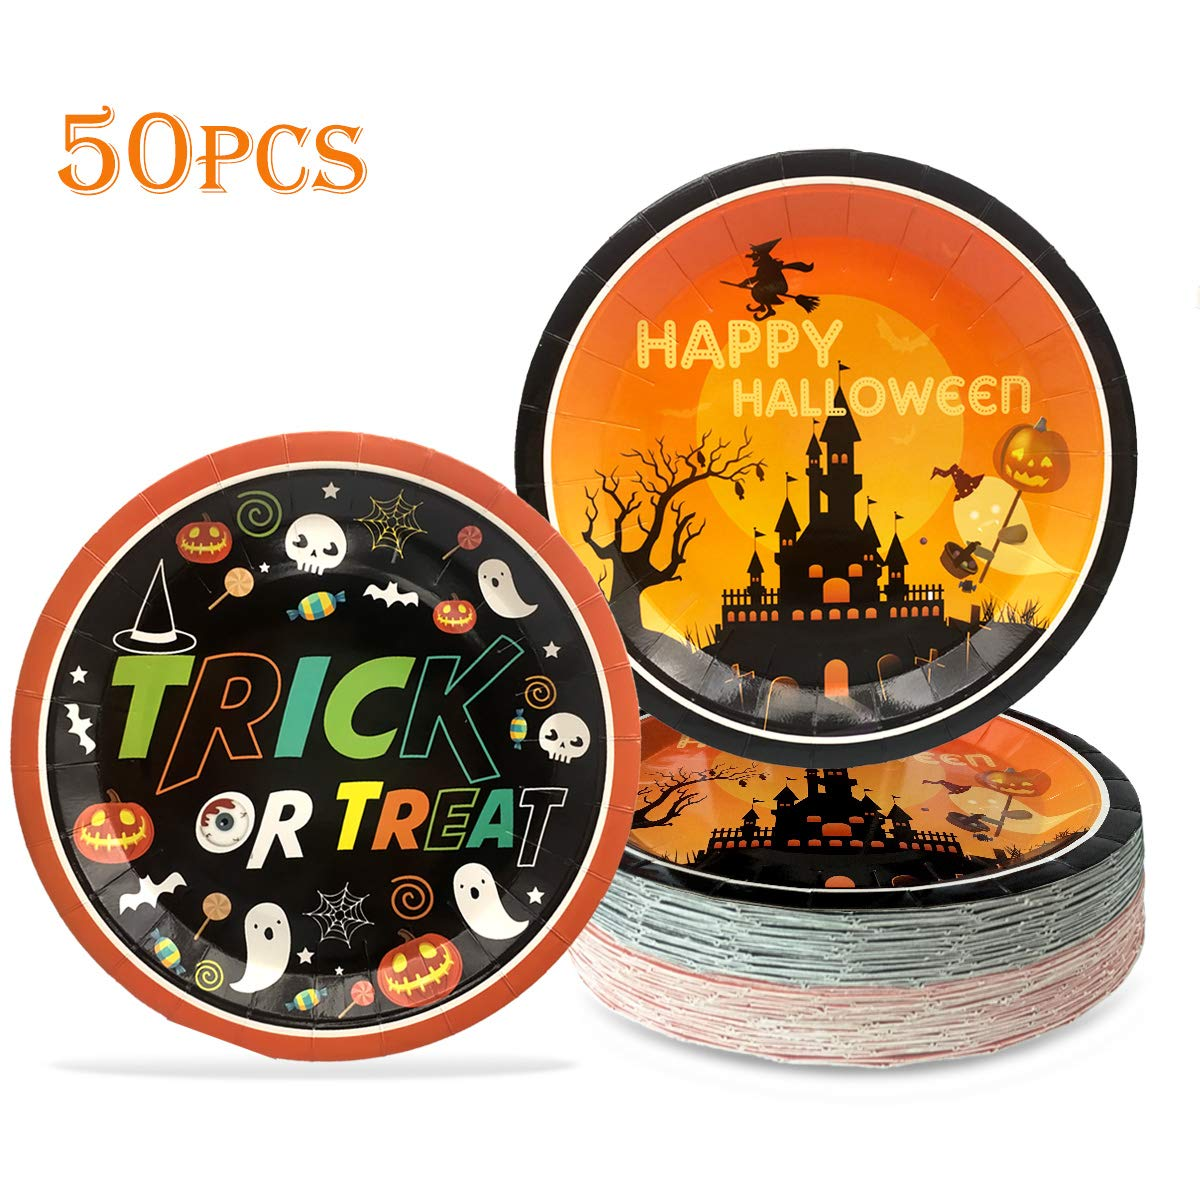 Halloween Plates Party Supplies - Trick or Treat Paper Dinnerware Happy Halloween Round Tray Home Dinner Décoration Dish Dessert Cake Plates Disposable Platters Sets Accessory for Kids 9'' (50pcs) by KooNicee